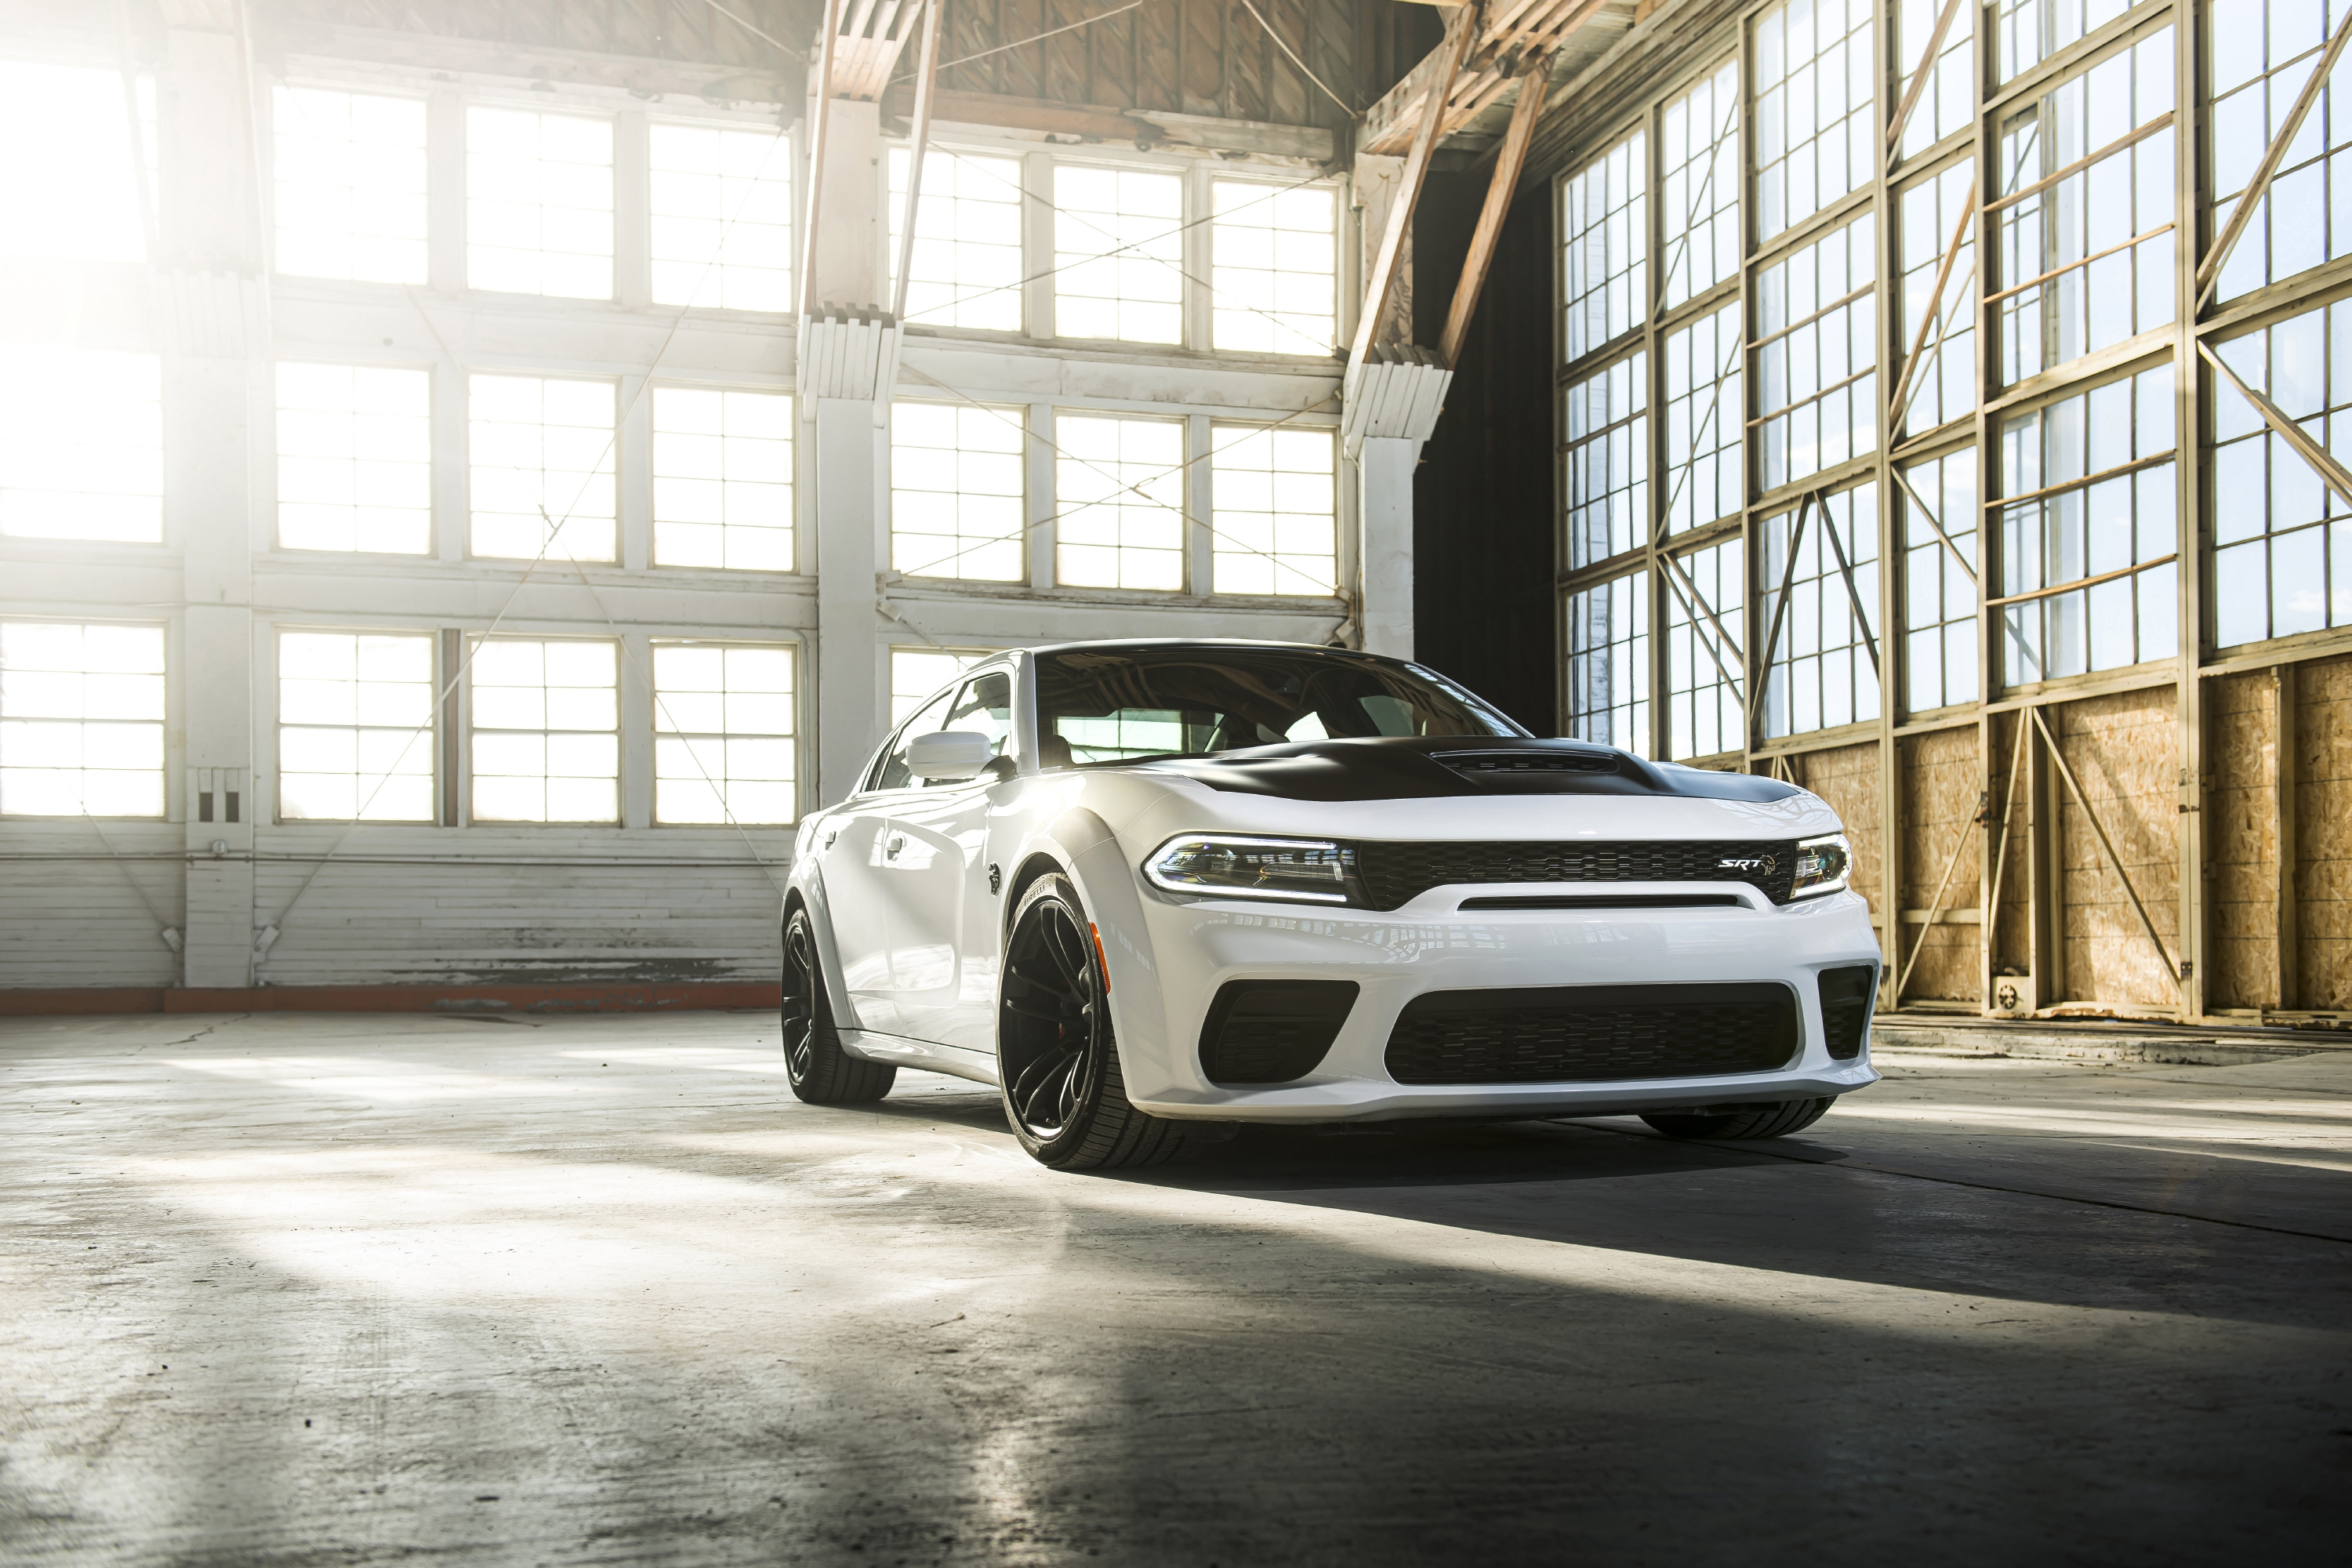 Dodge Charger Srt Hellcat 4k Wallpaper 2021 Cars 1590